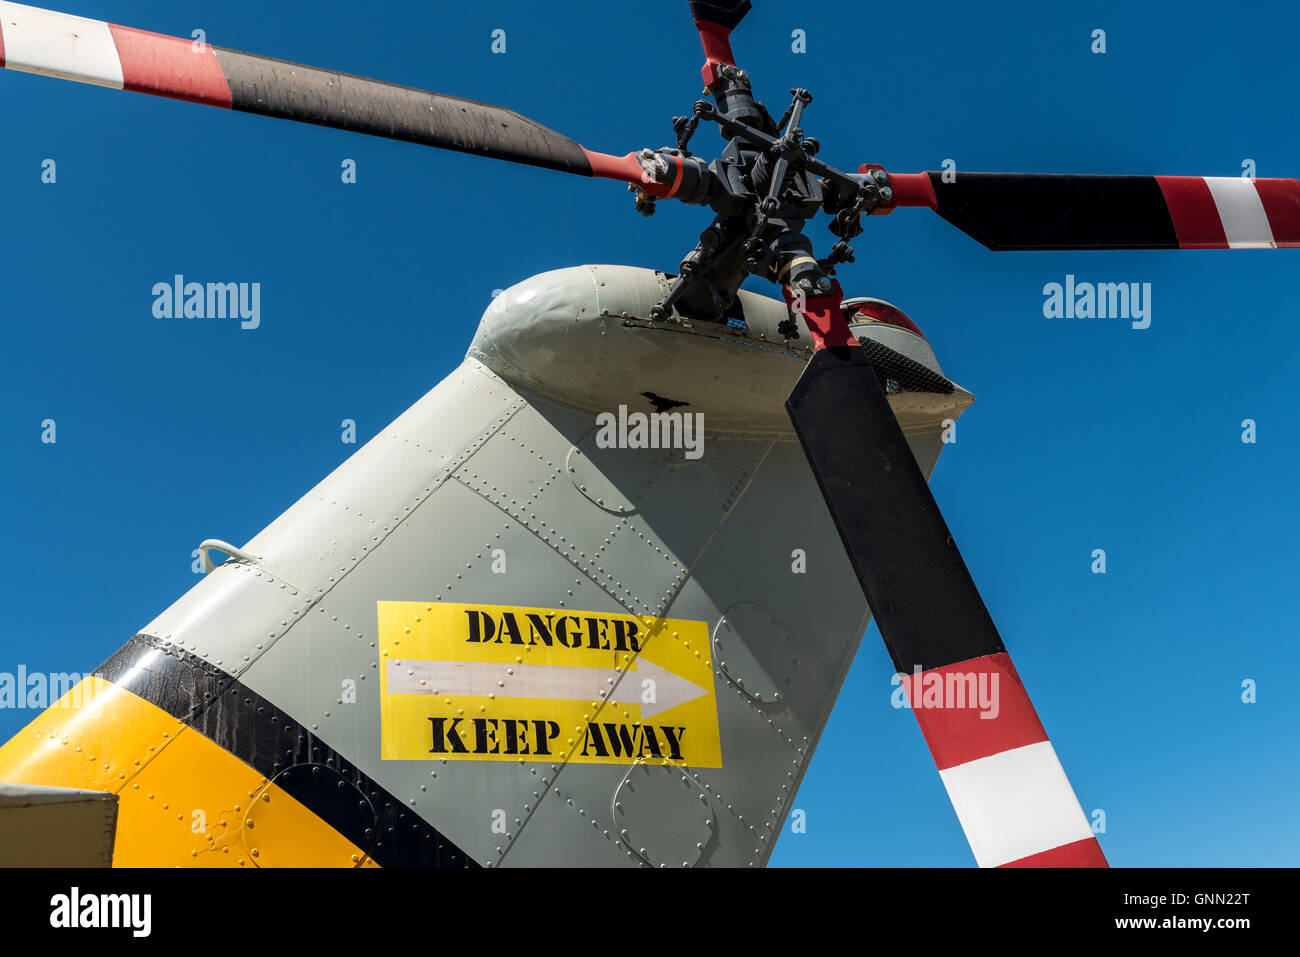 Helicopter tail and rotor with appropriate warning - Stock Image